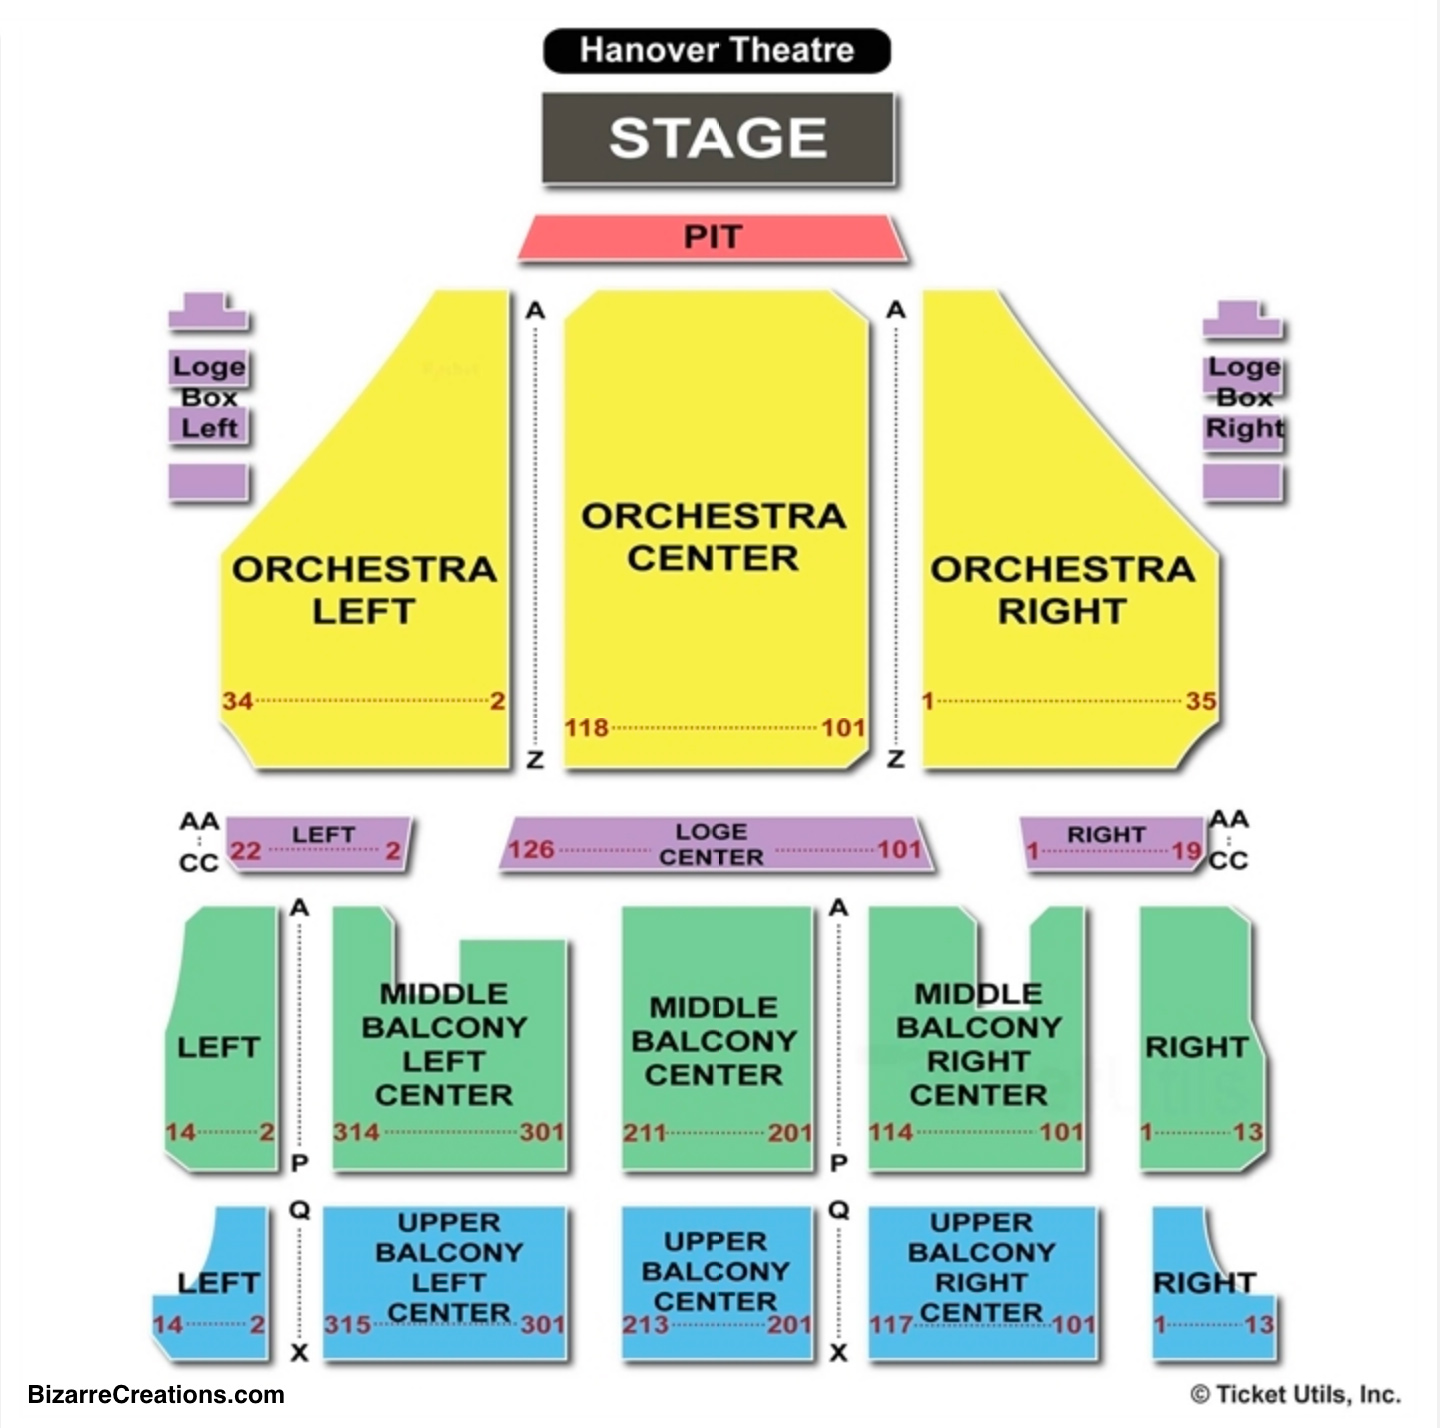 Hanover Theatre Seating Chart - Worcester